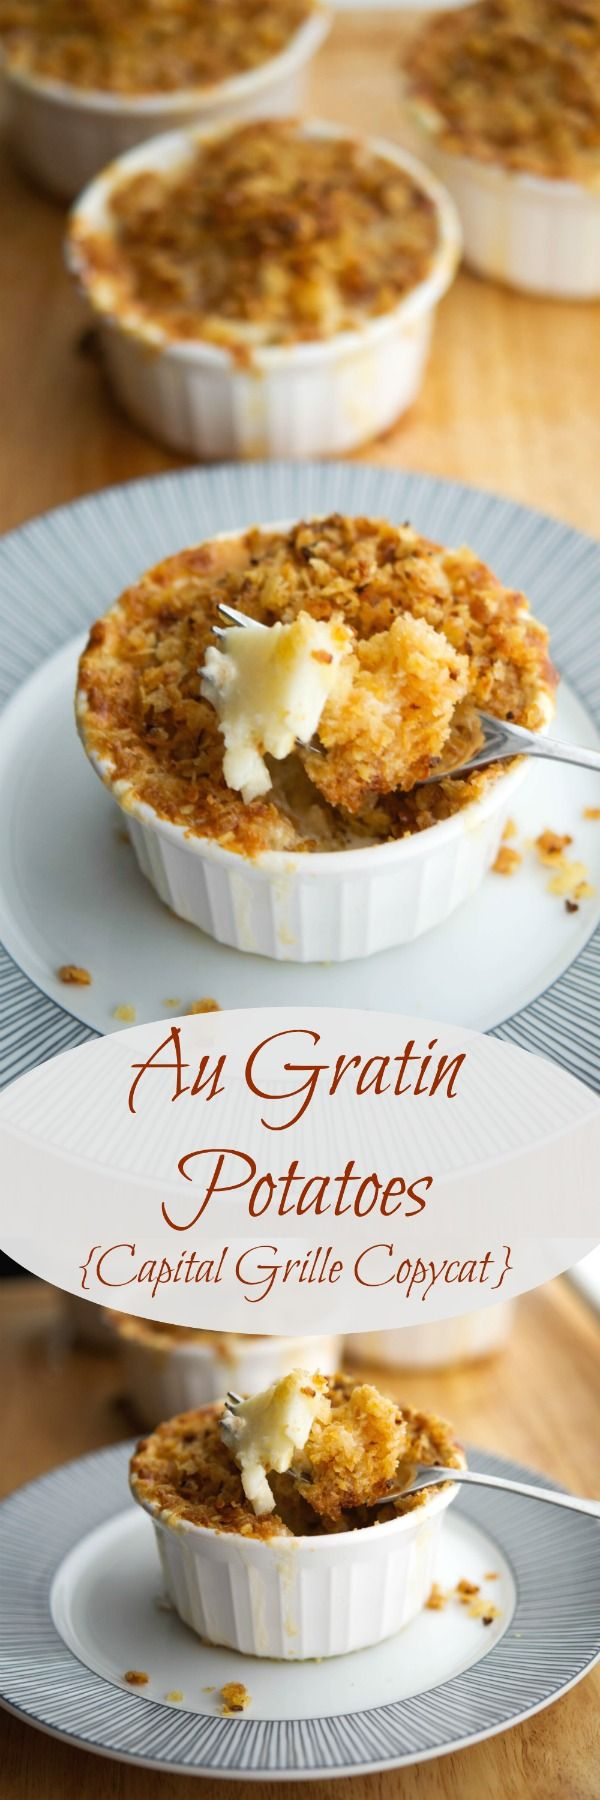 Do you love the Capital Grille restaurant's Au Gratin Potatoes as much as my family does? Learn how you can make them at home.